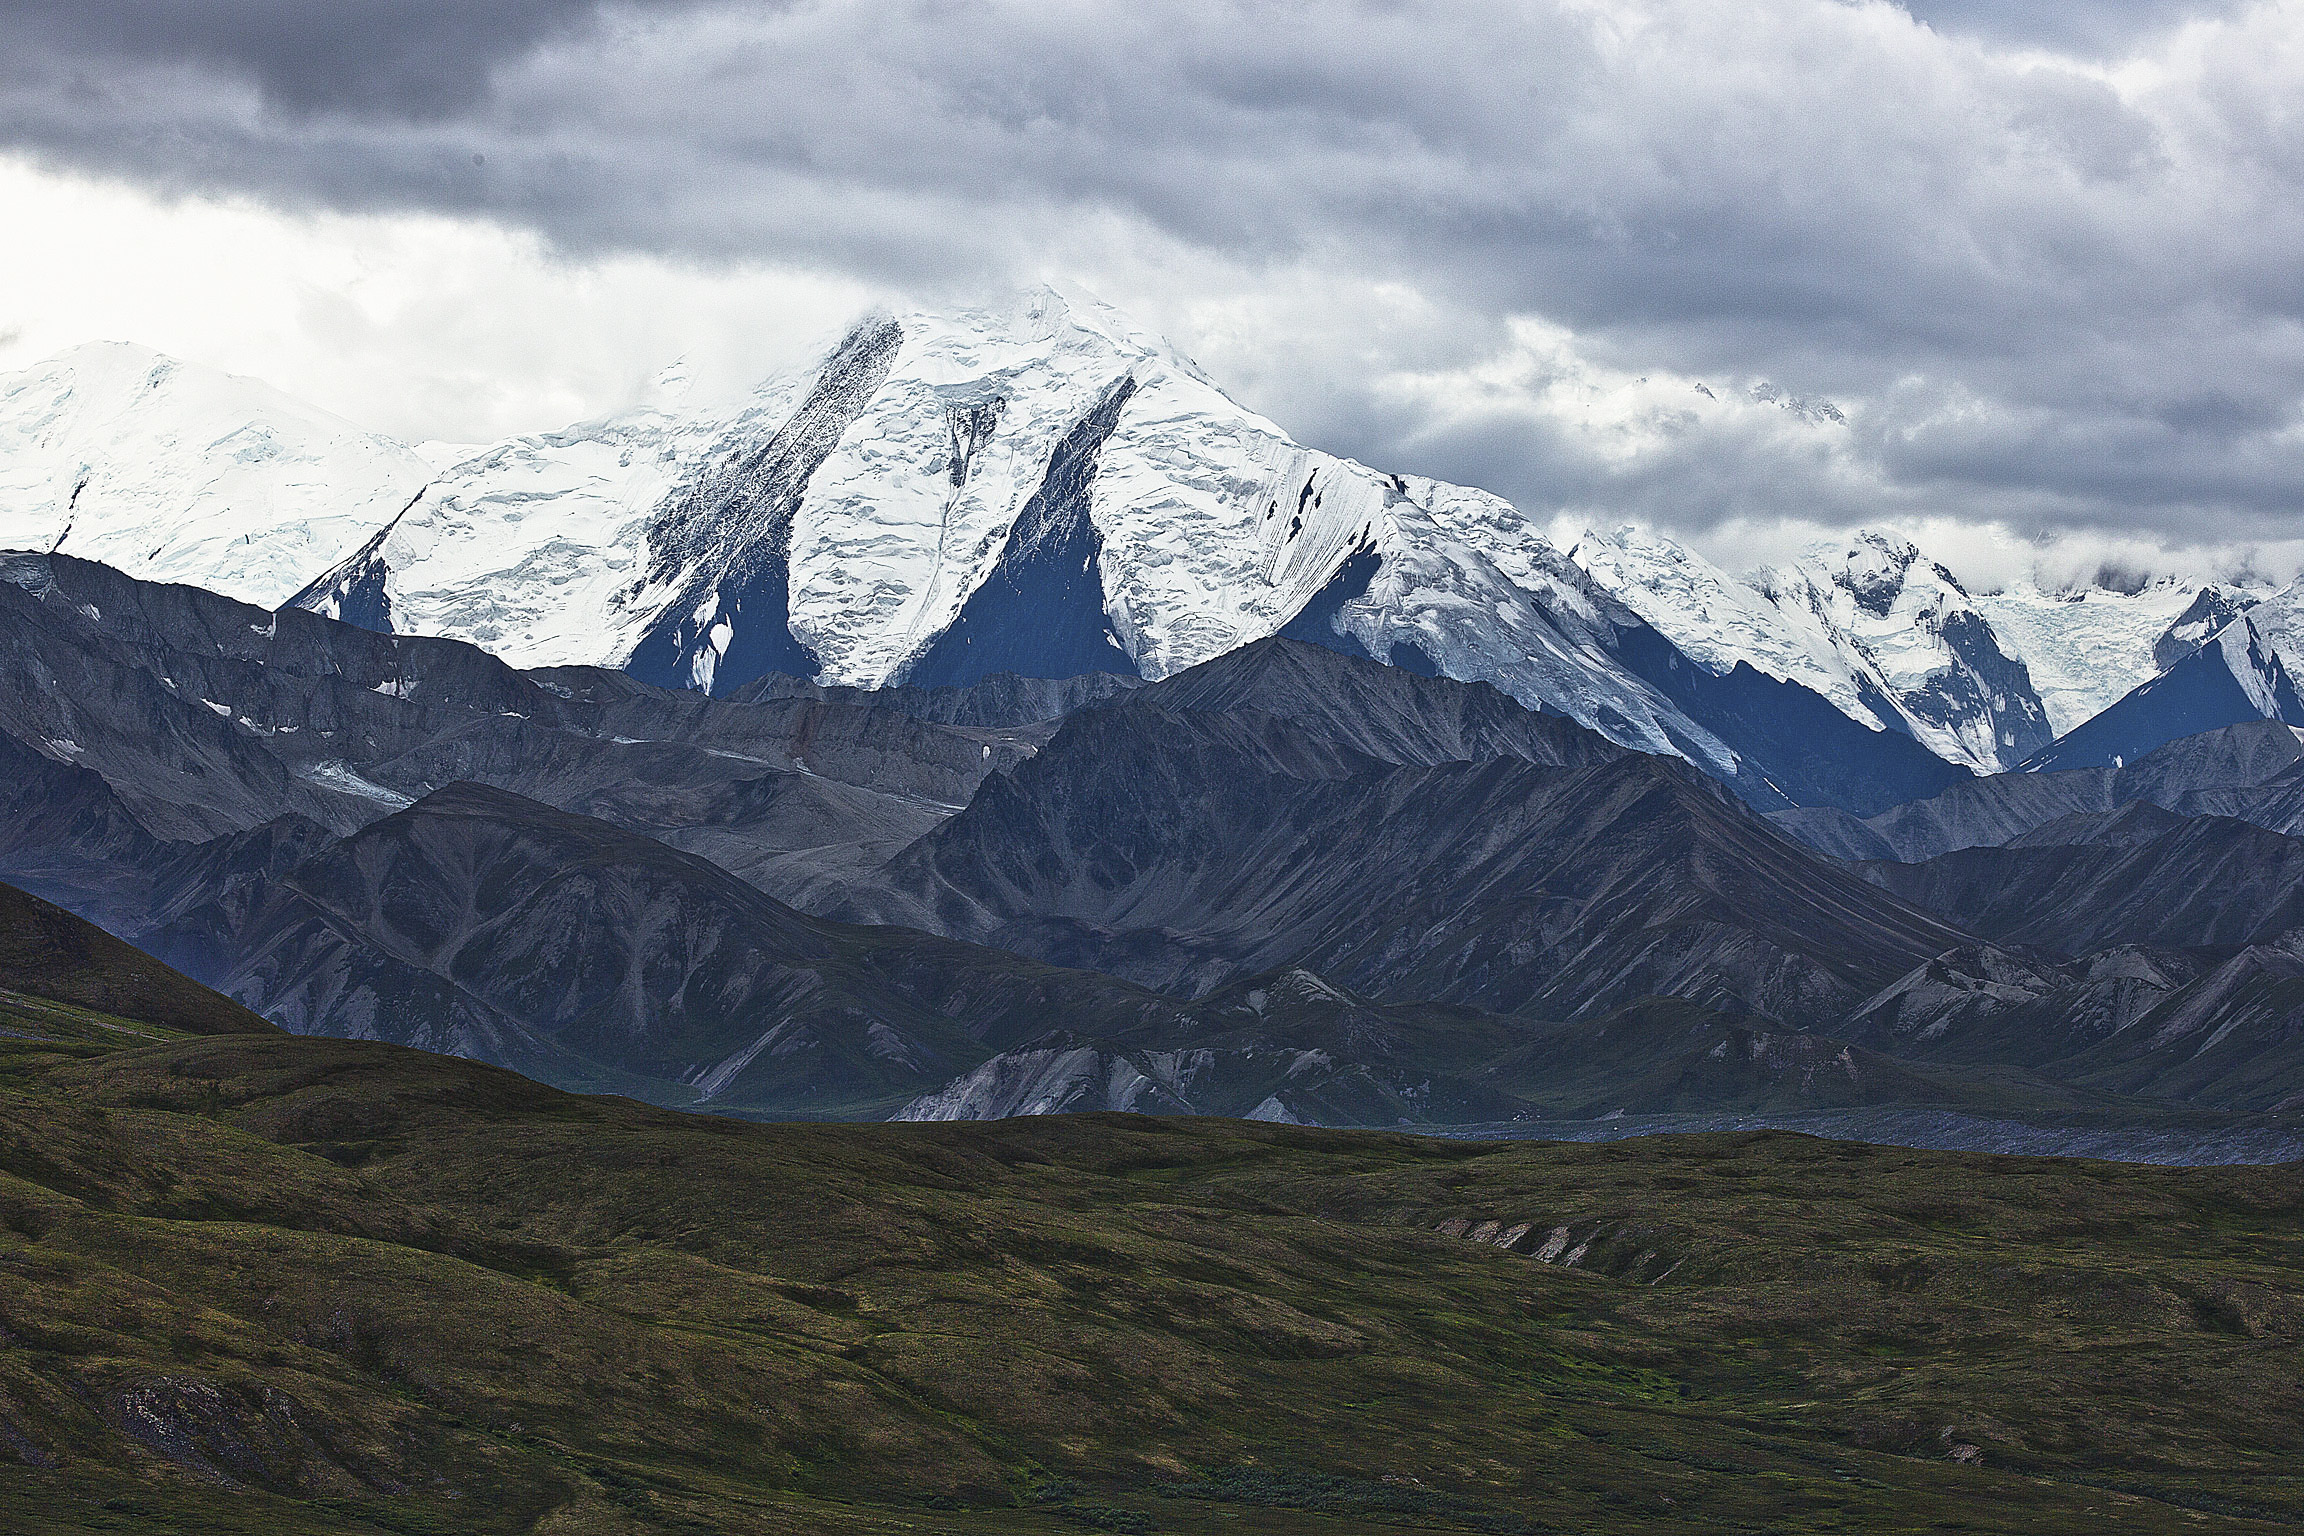 The base of Denali